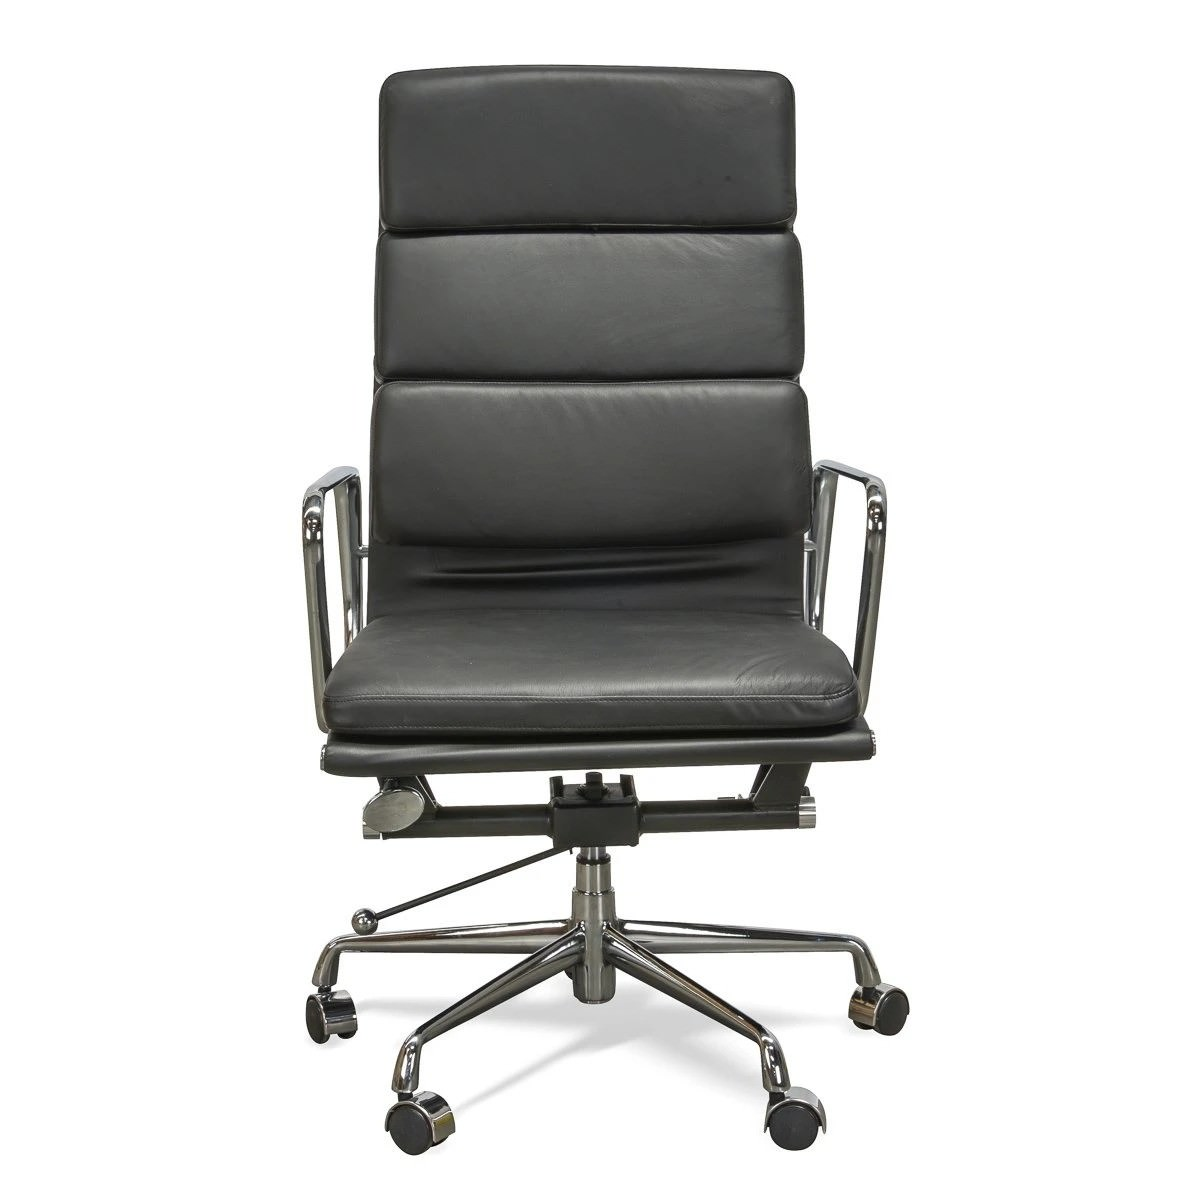 Replica Eames Italian Leather Soft Pad Office Chair, High Back, Black / Silver